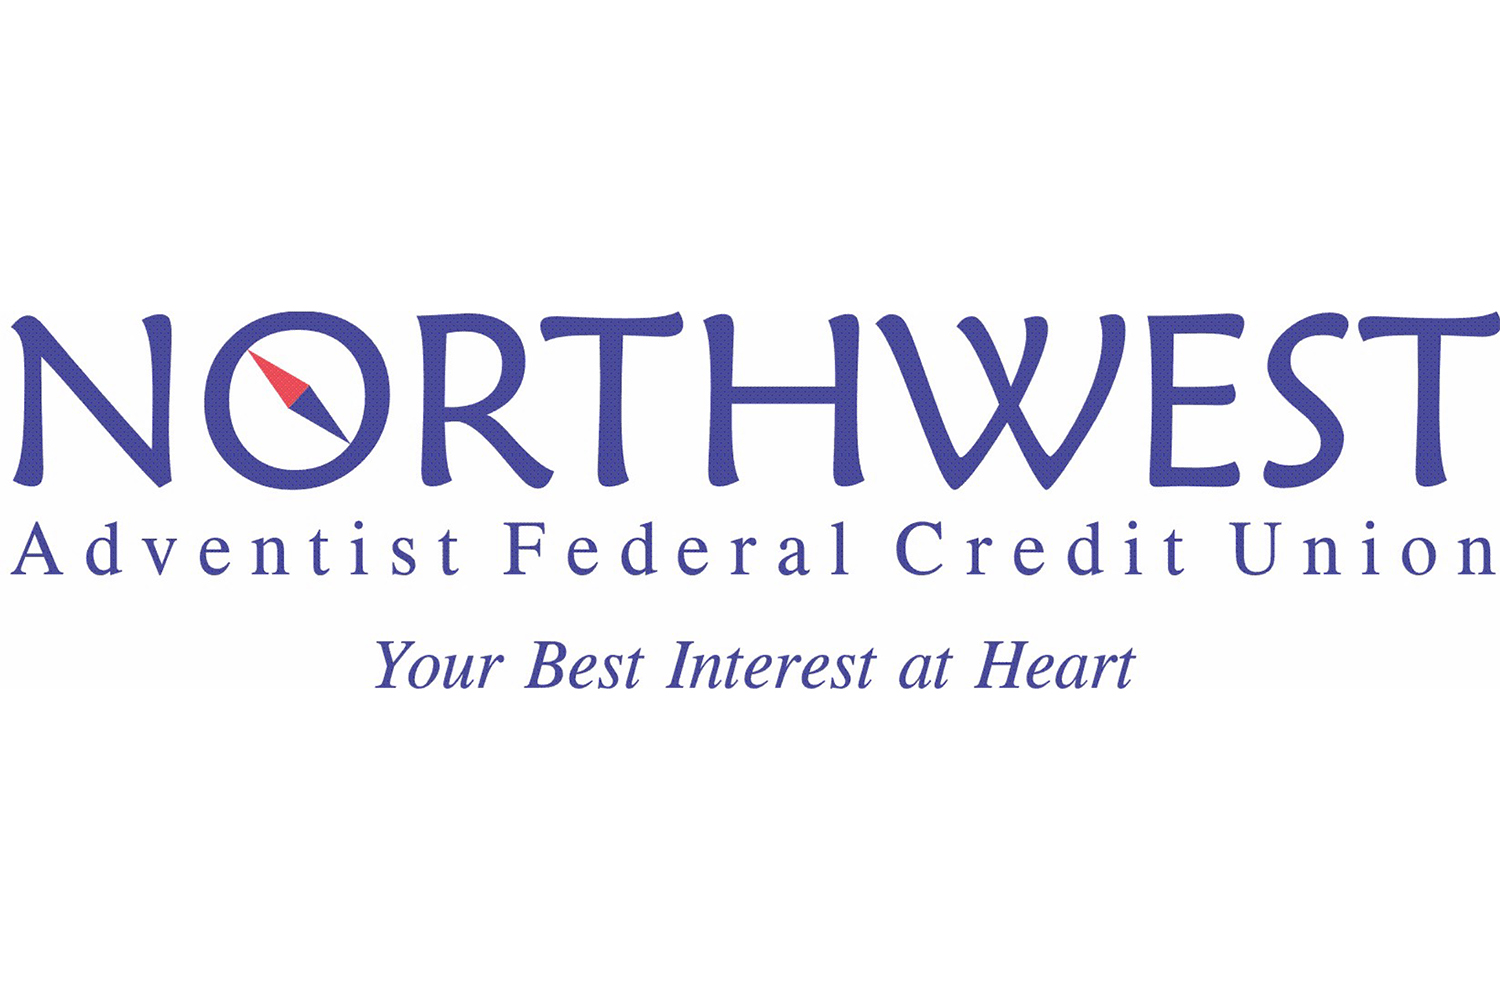 Northwest Adventist Federal Credit Union is Here to Serve